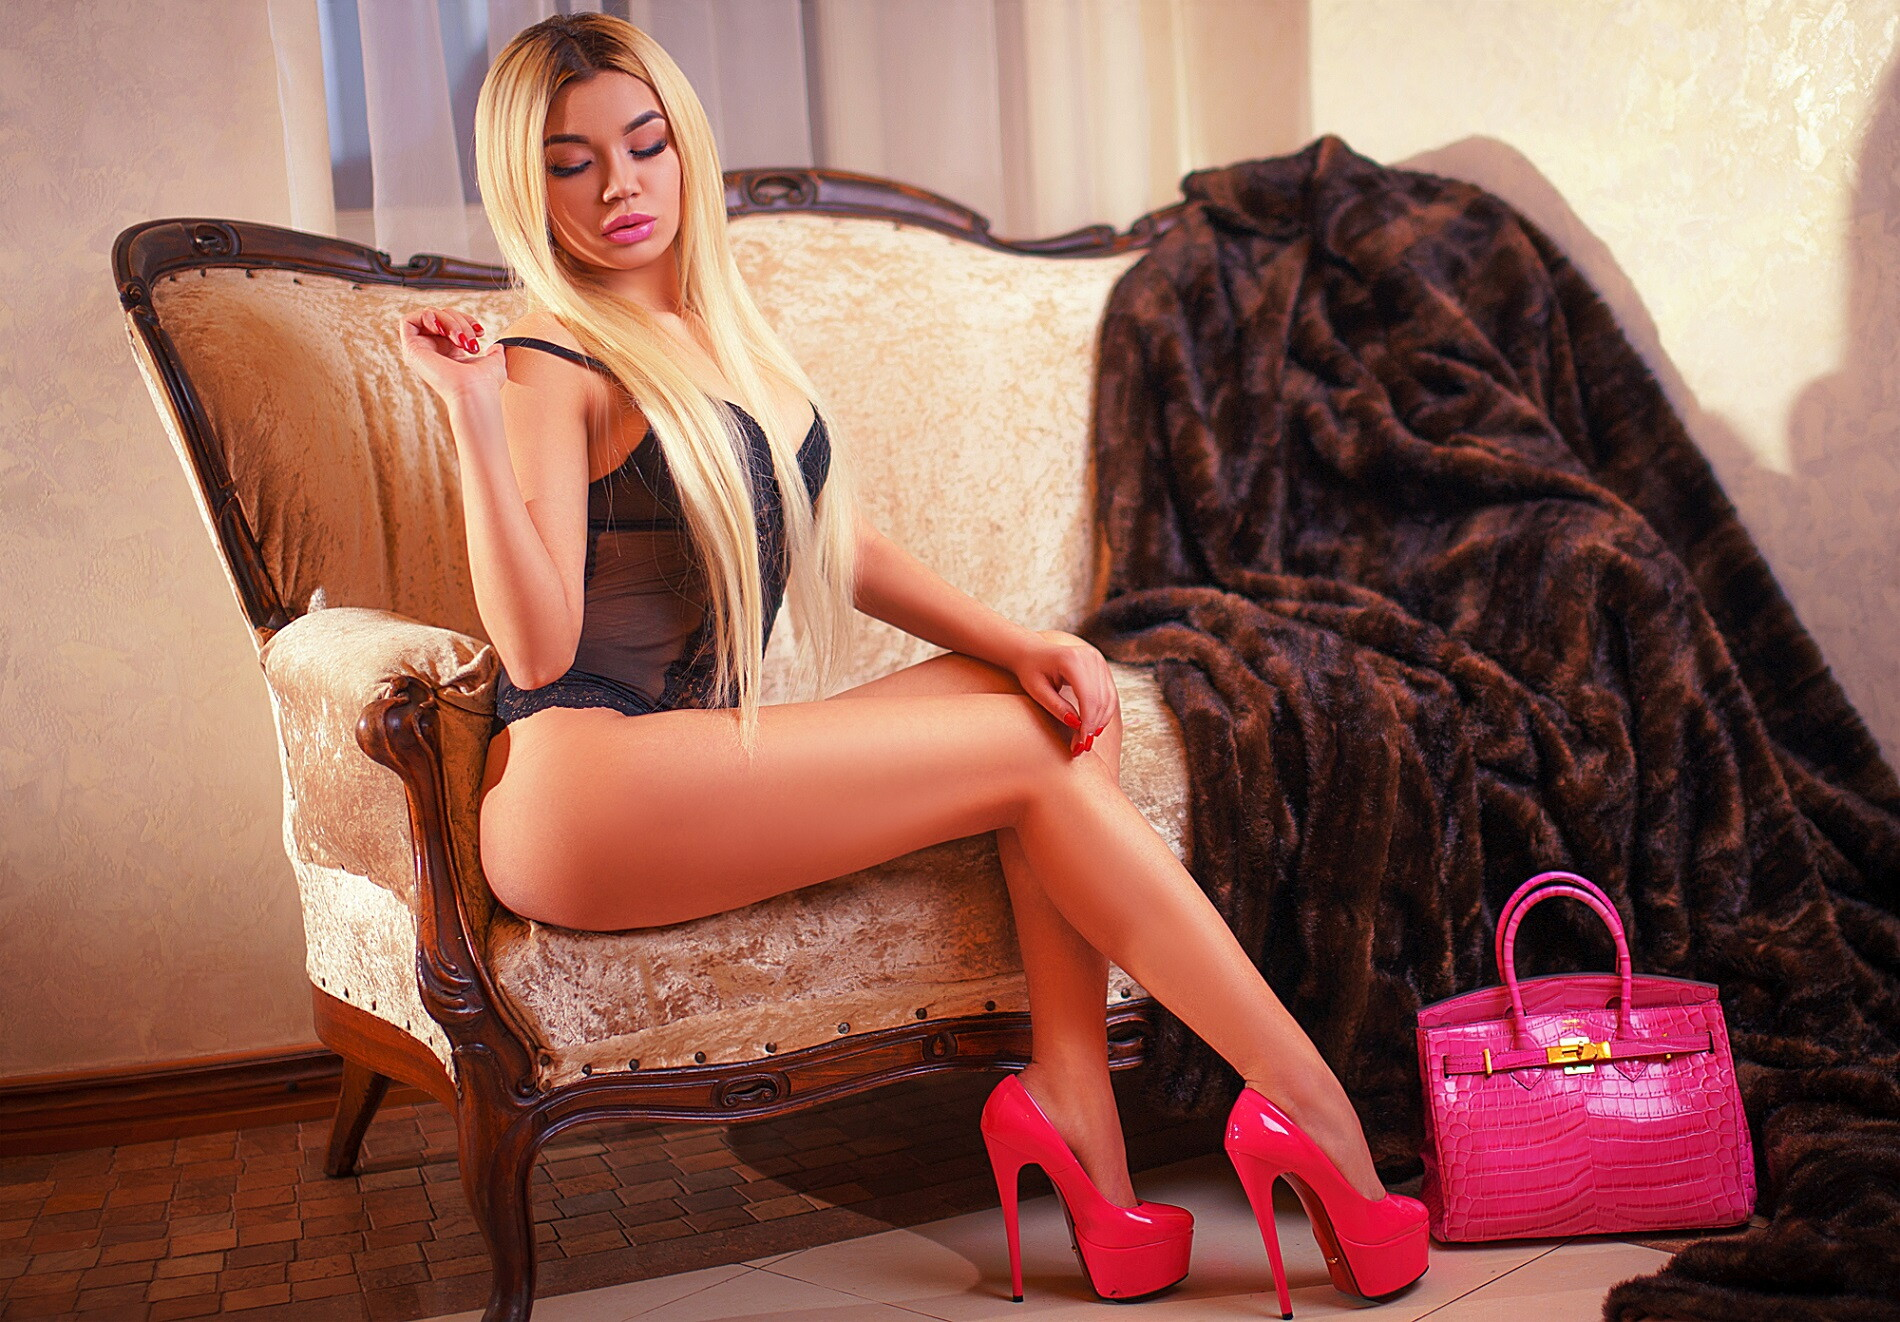 Russian Blogger Vlad Saveliev And Hot Moscow Prostitute